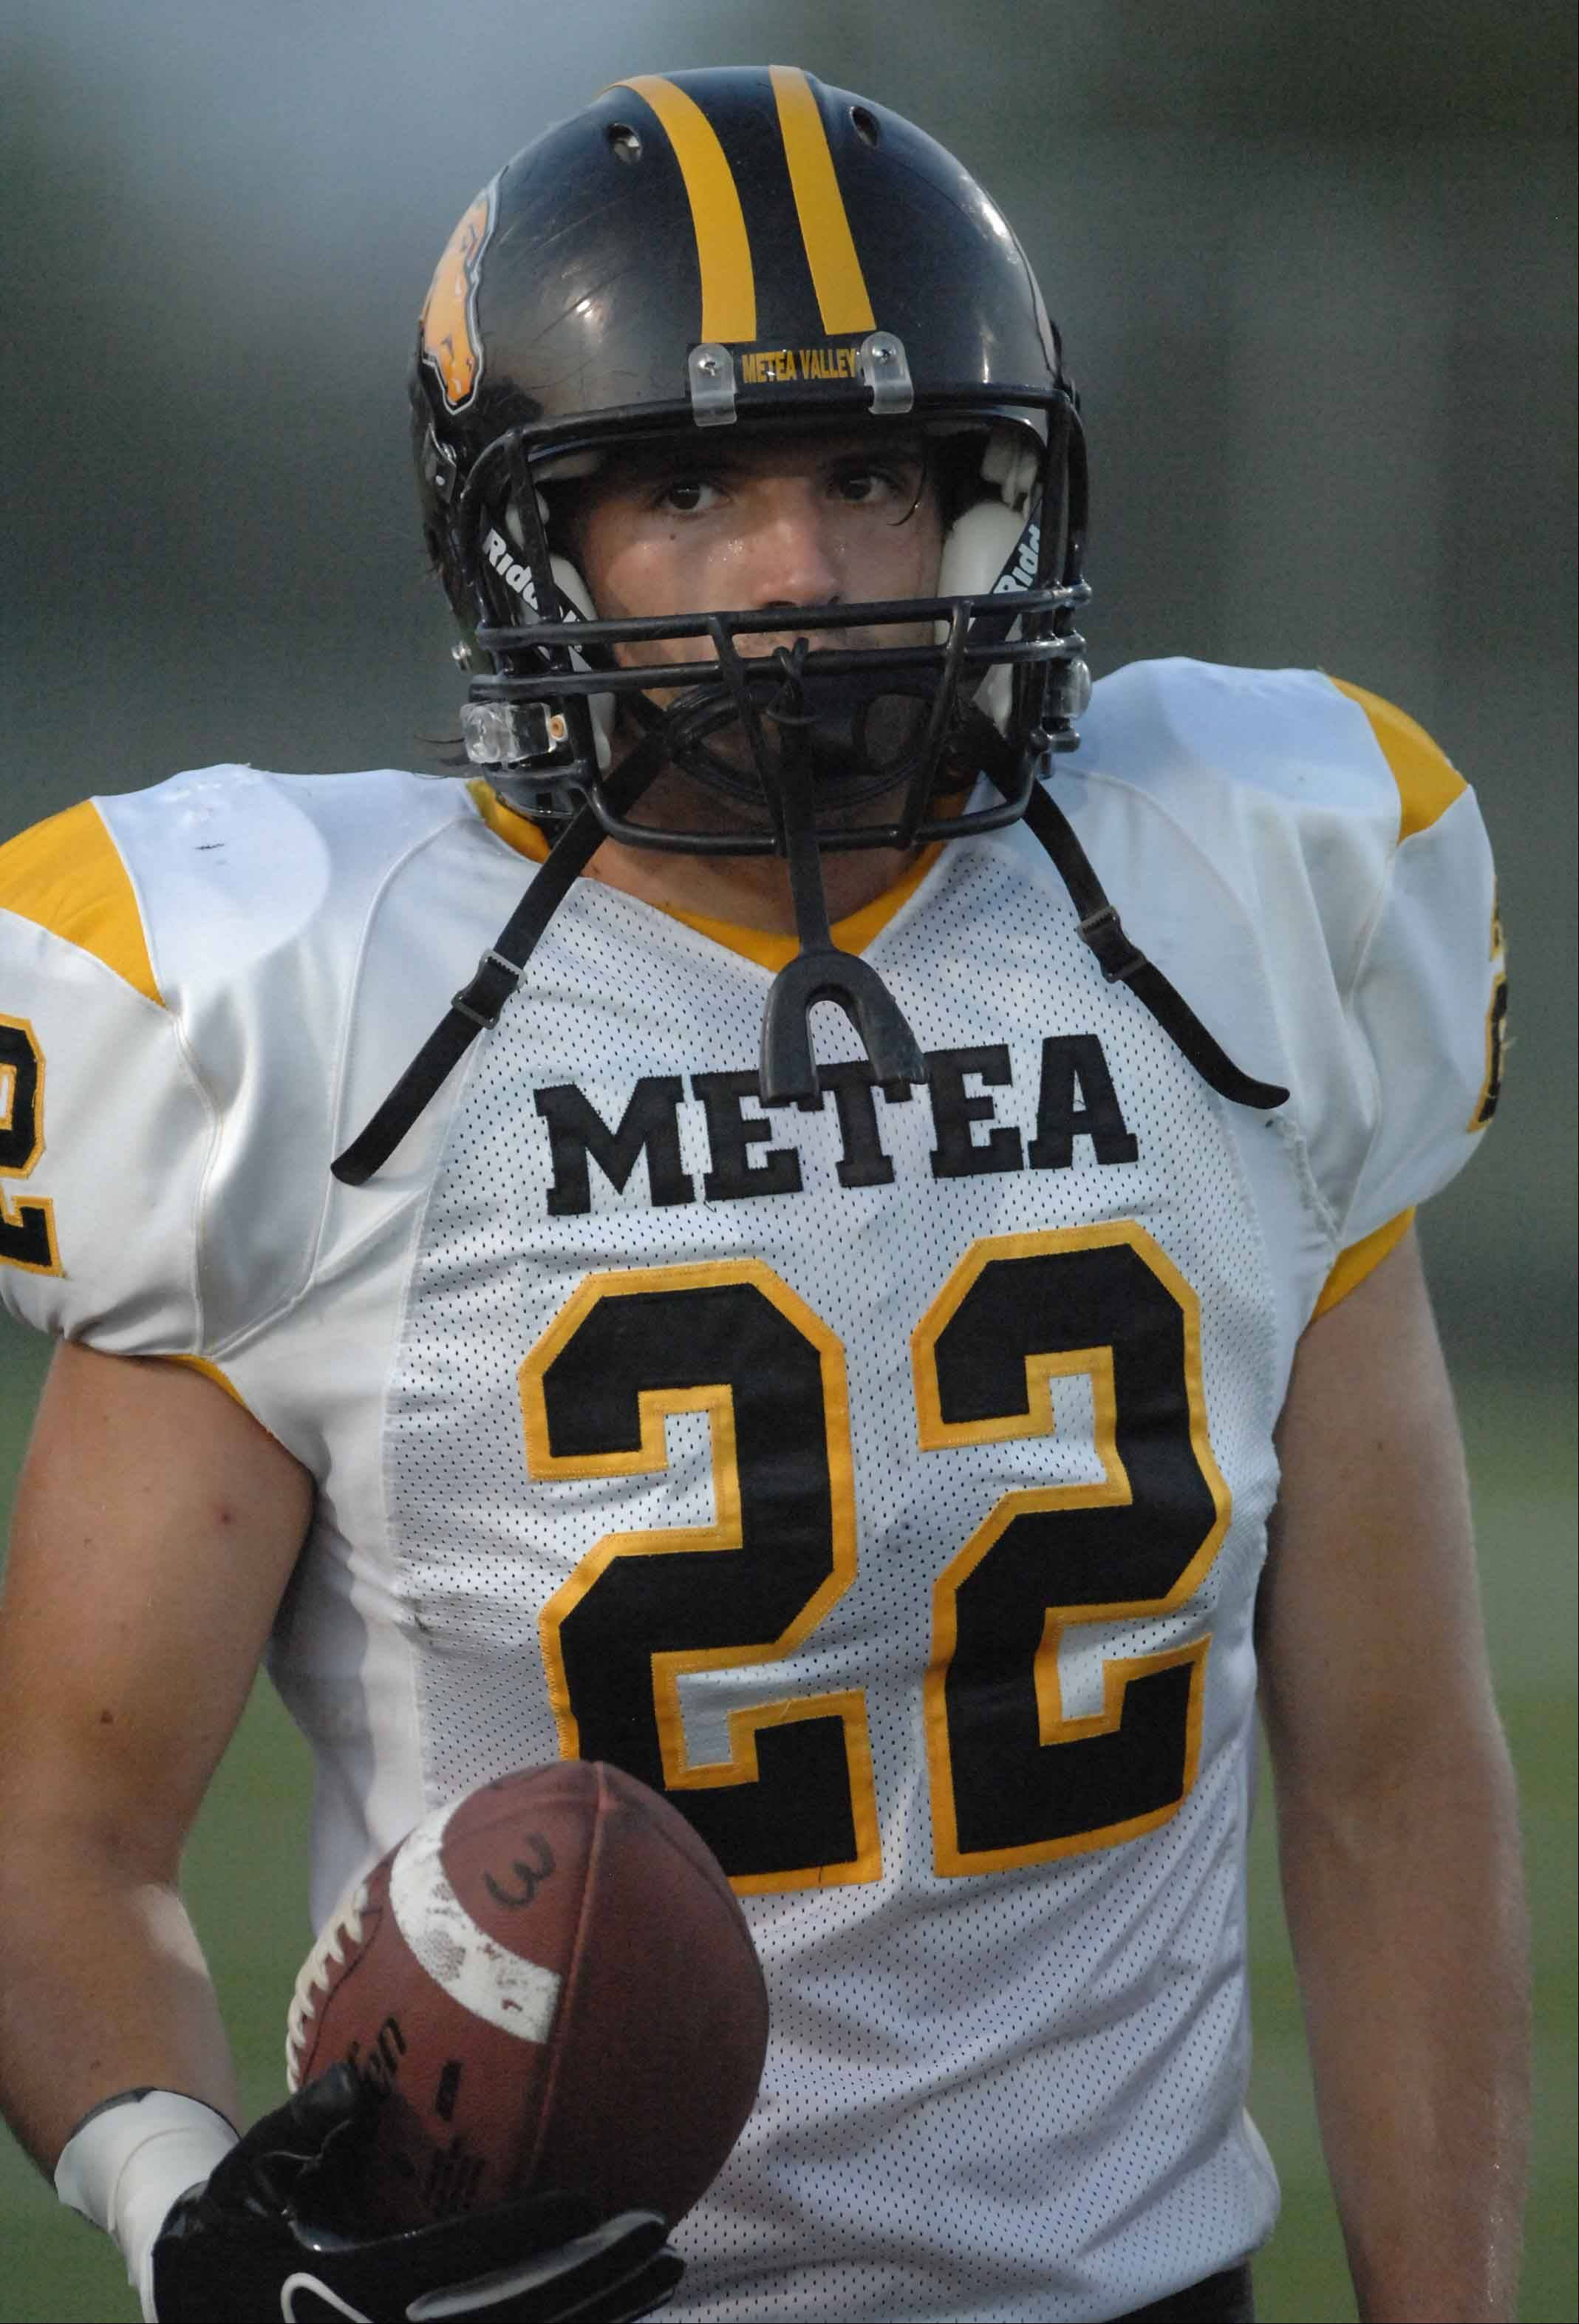 Zach Wood during the Metea scrimmage Friday.